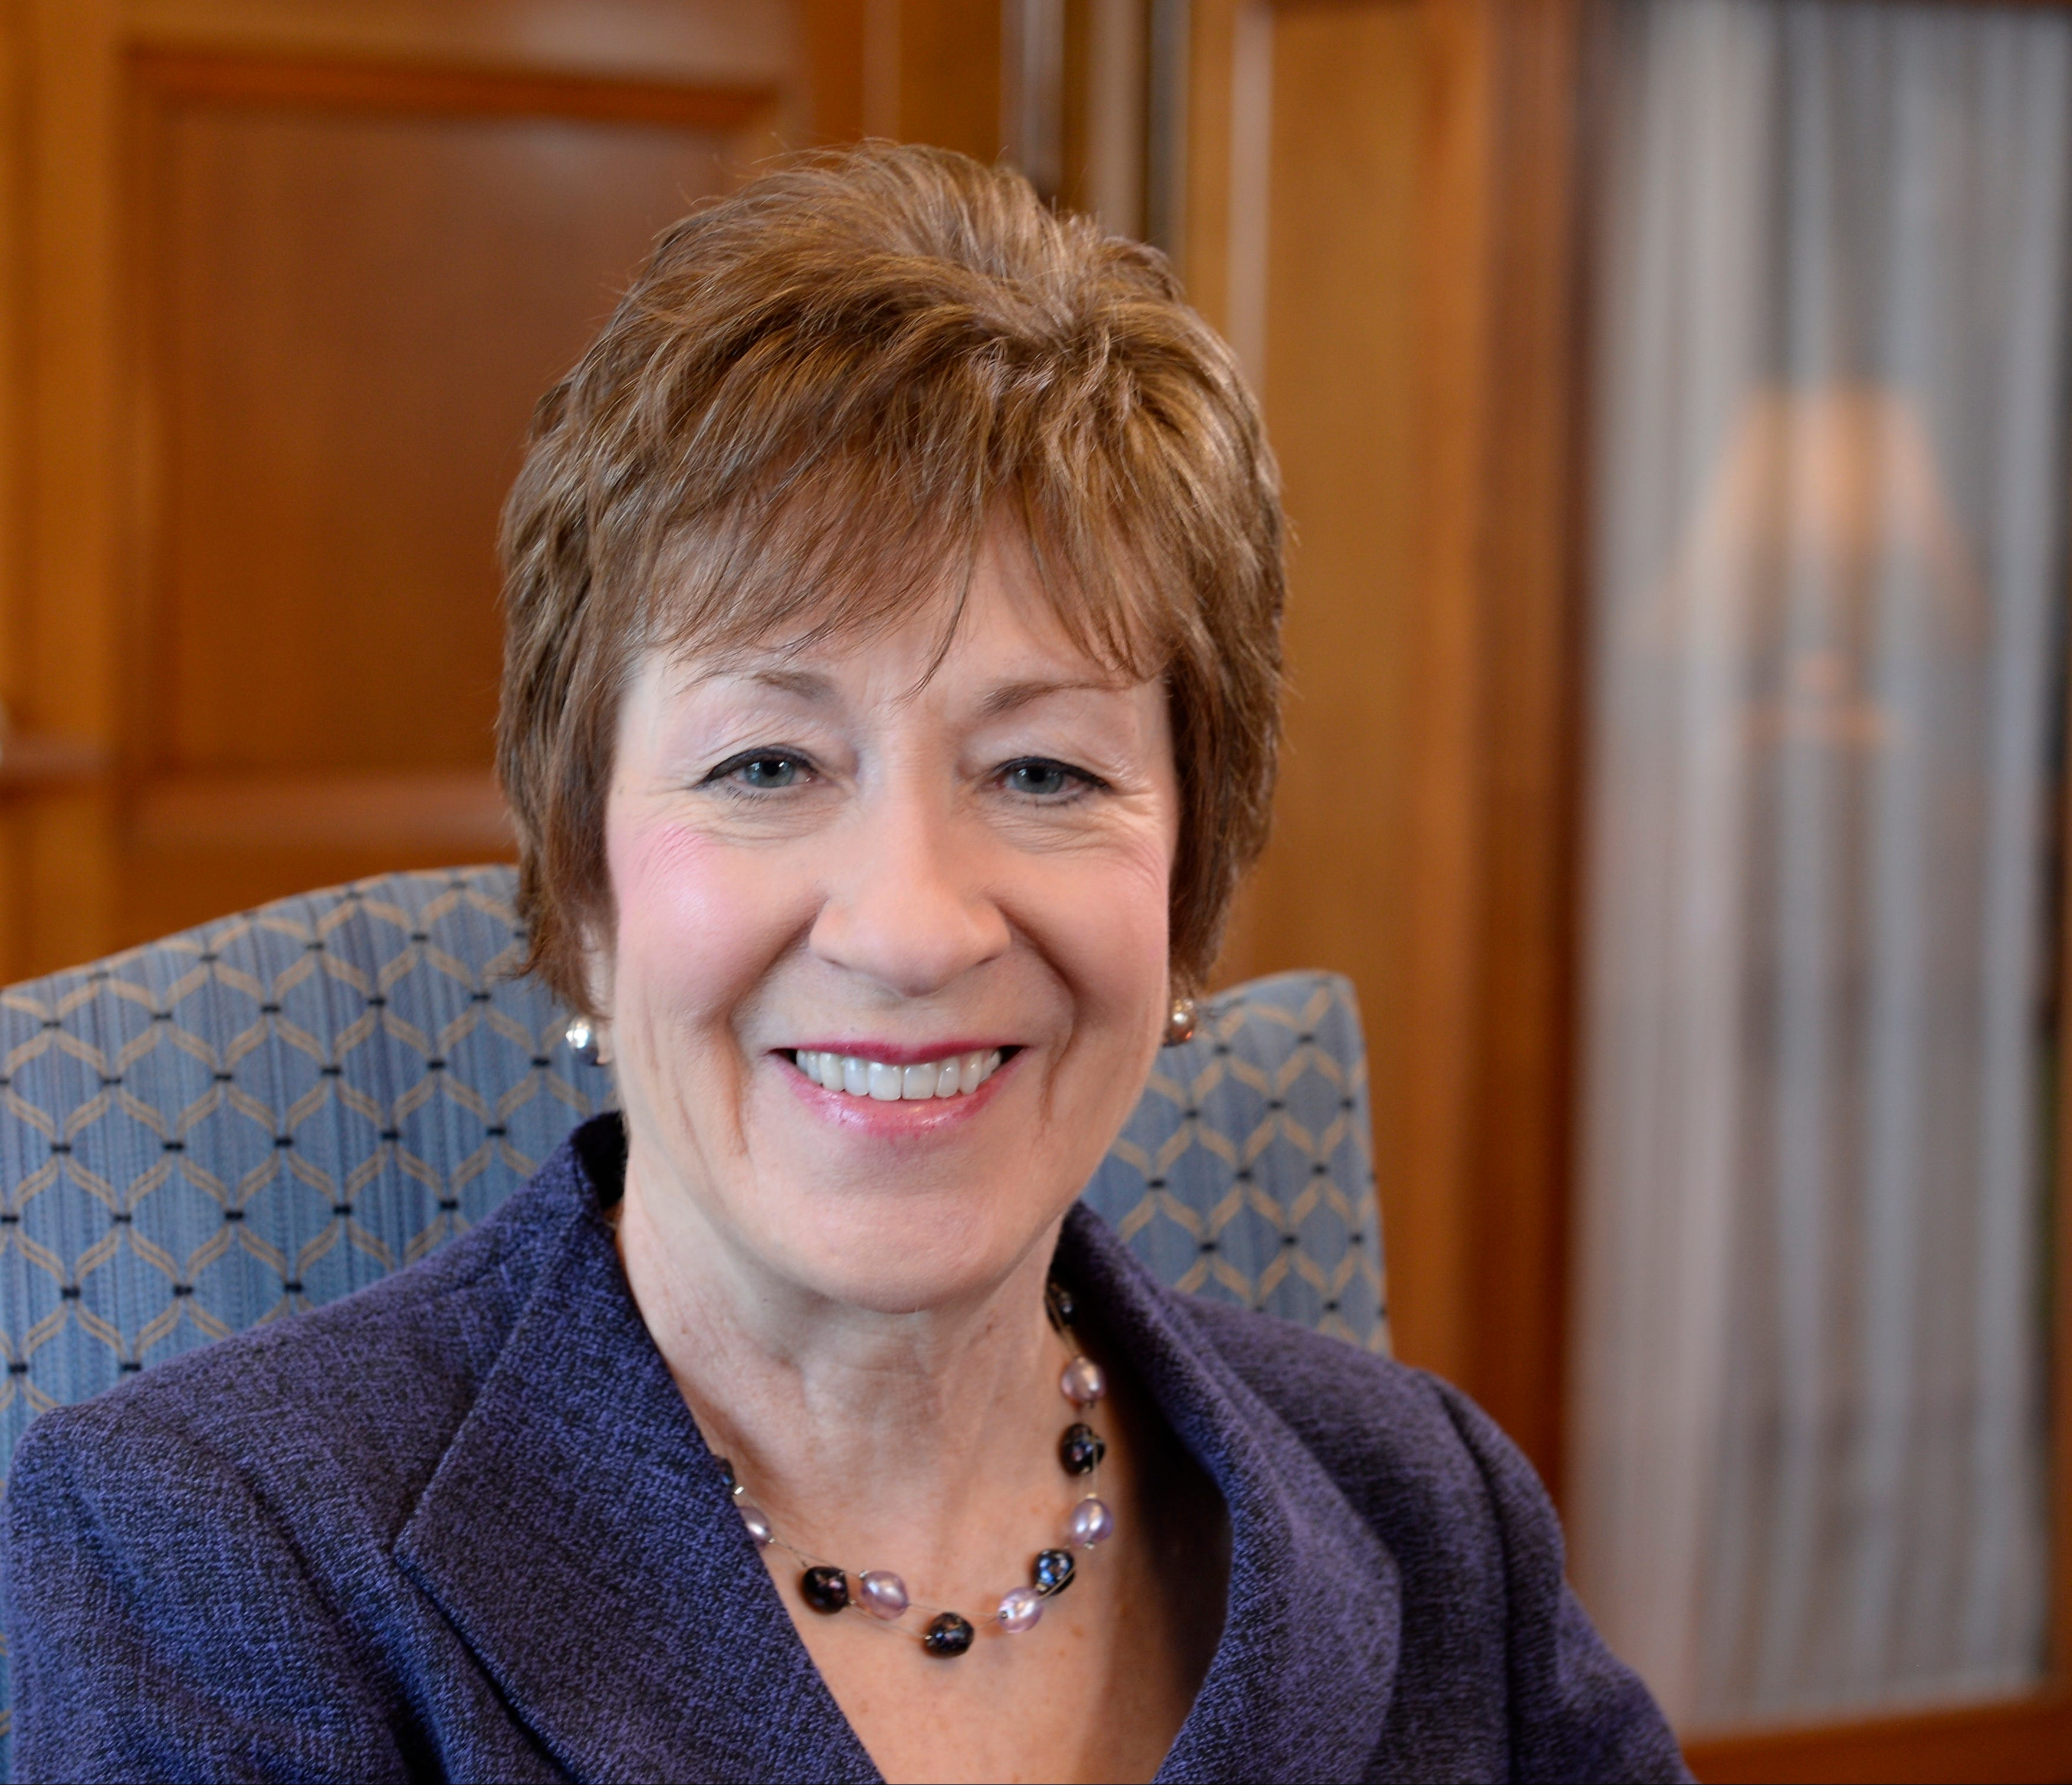 Collins Sees Hope For Progress After Shutdown Crisis